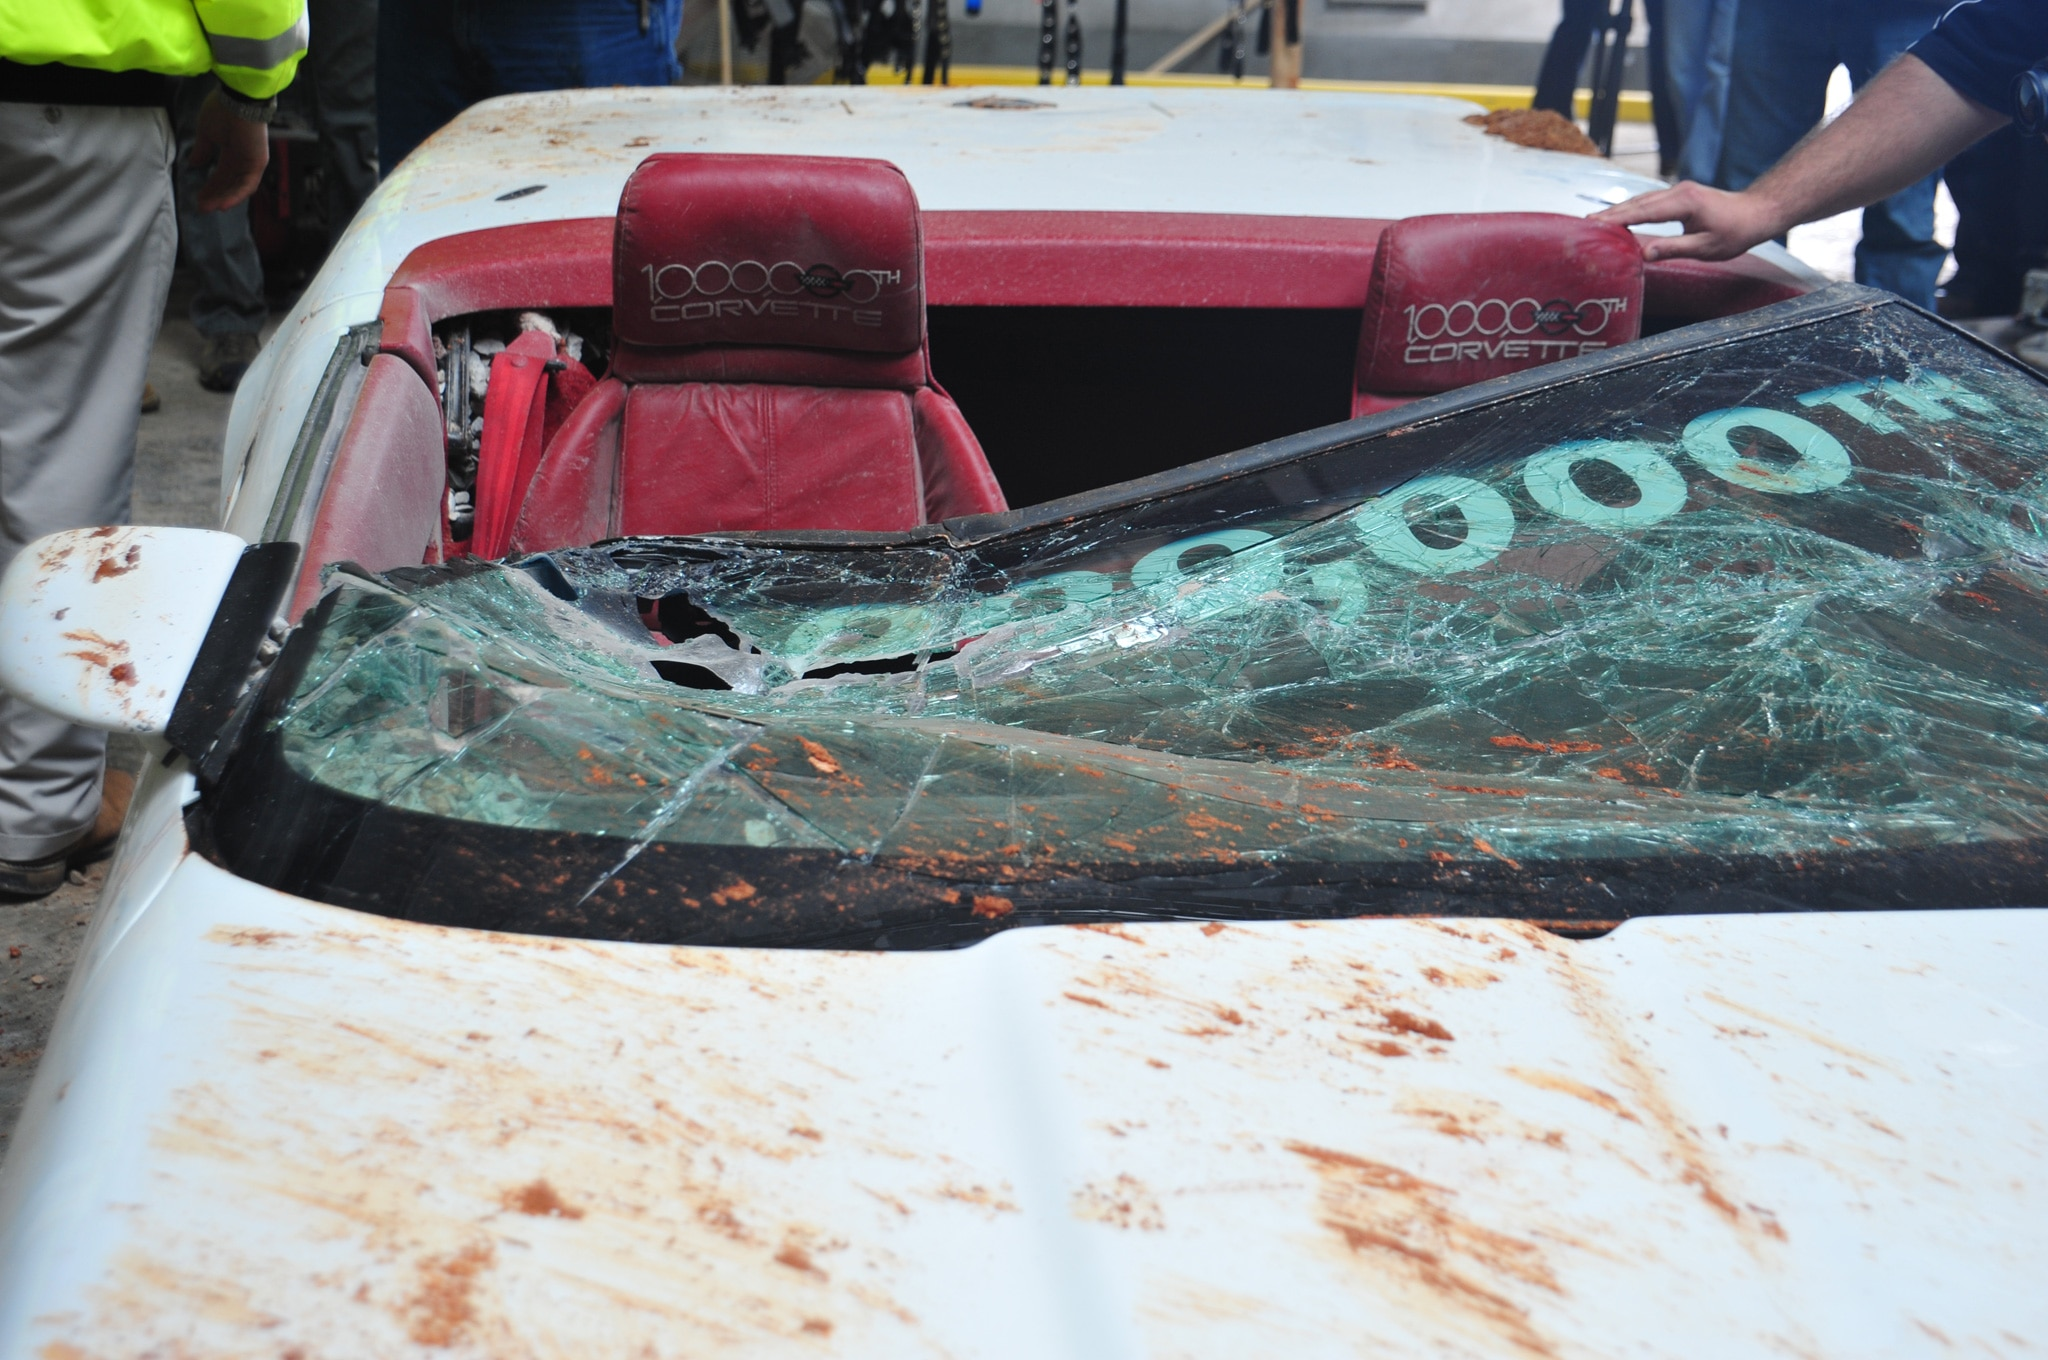 National Corvette Museum >> GM Finishes Restoration of 1992 Chevrolet Corvette Damaged by Sinkhole